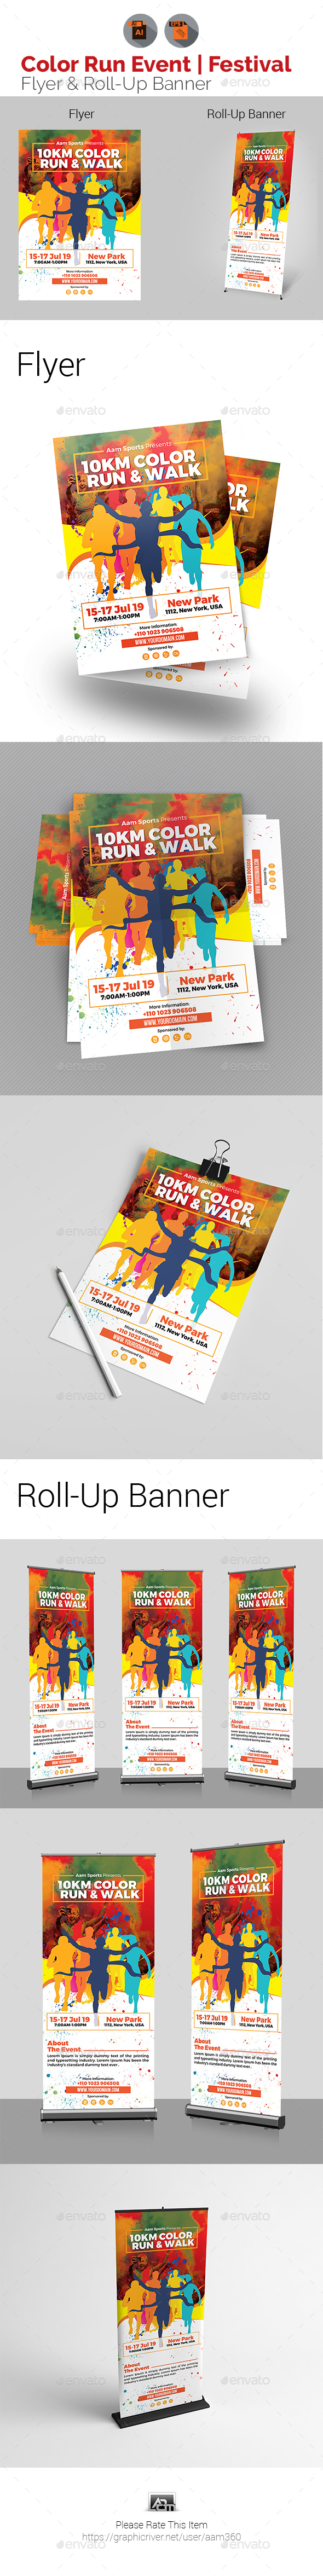 Color Run Event Flyer & Roll-Up Template Bundle - Sports Events